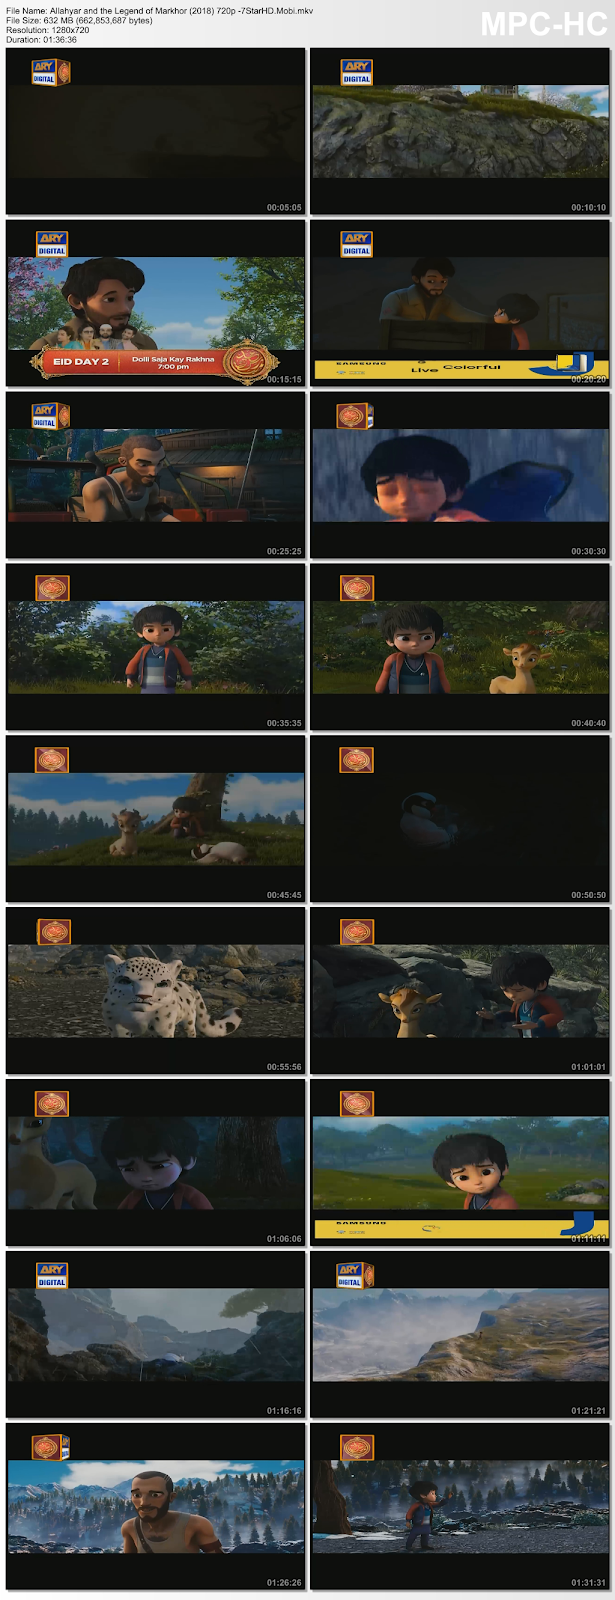 Allahyar and the Legend of Markhor (2018) Hindi 720p DTHRip x264 600MB 2